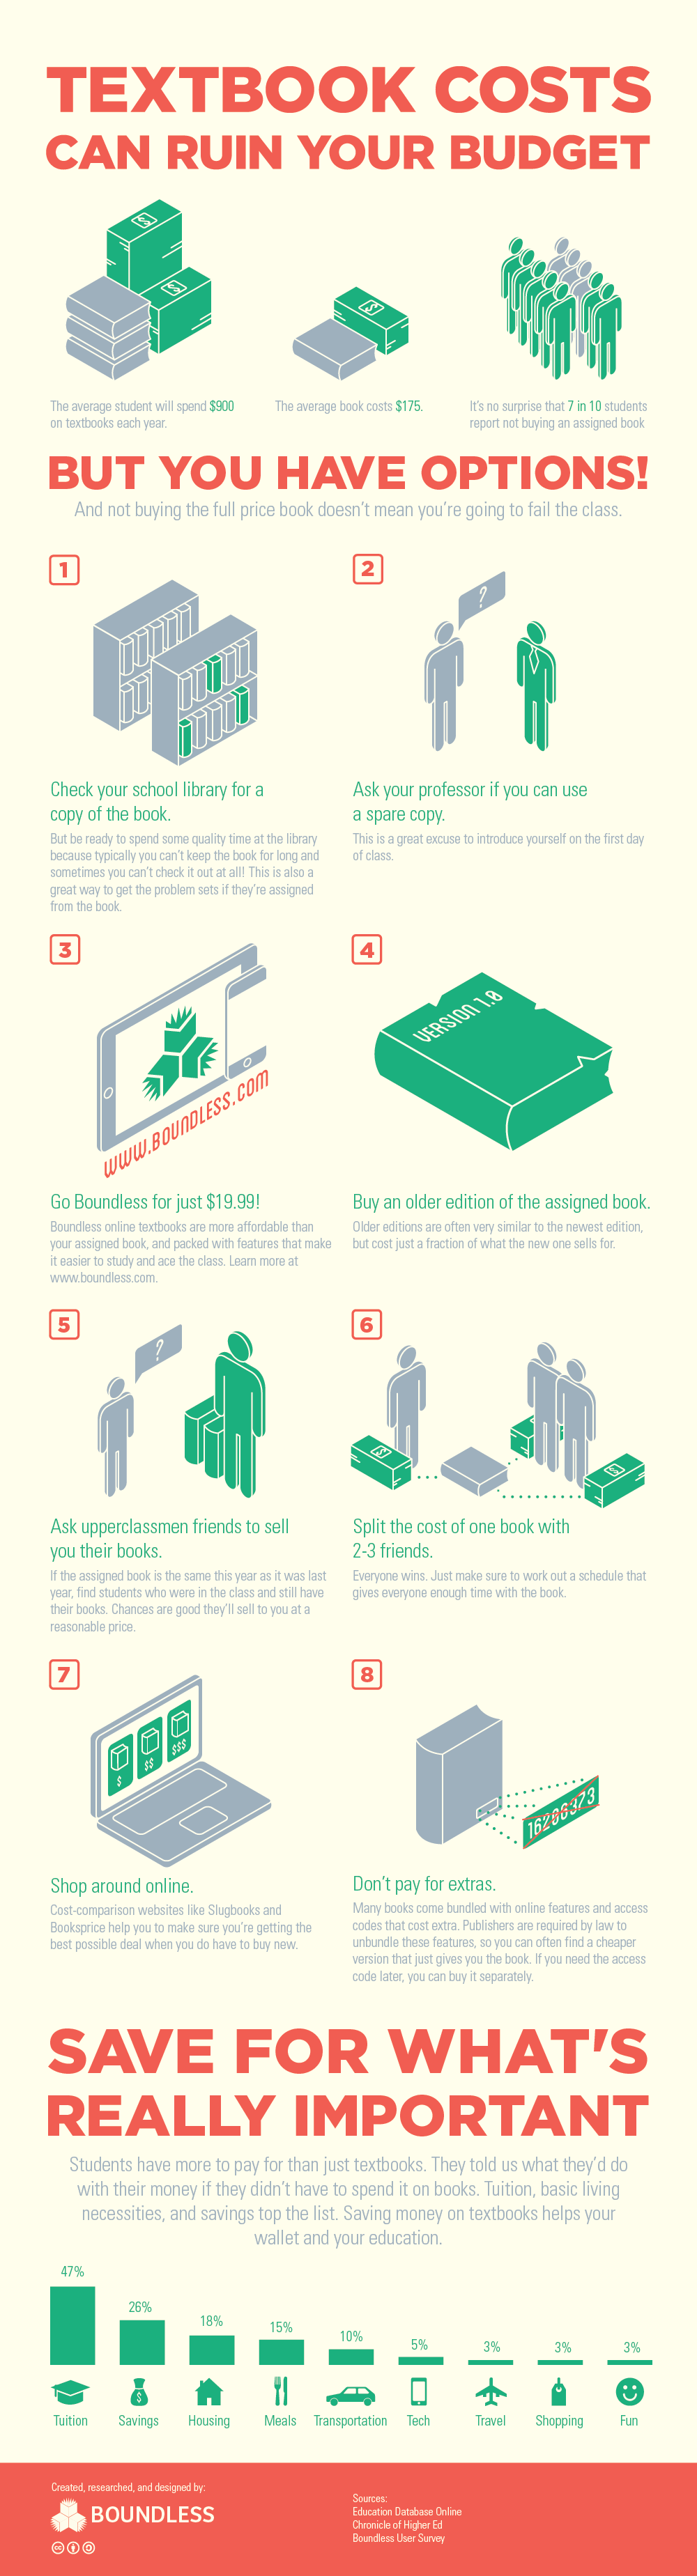 8 ways to save moneny on textbooks infographic